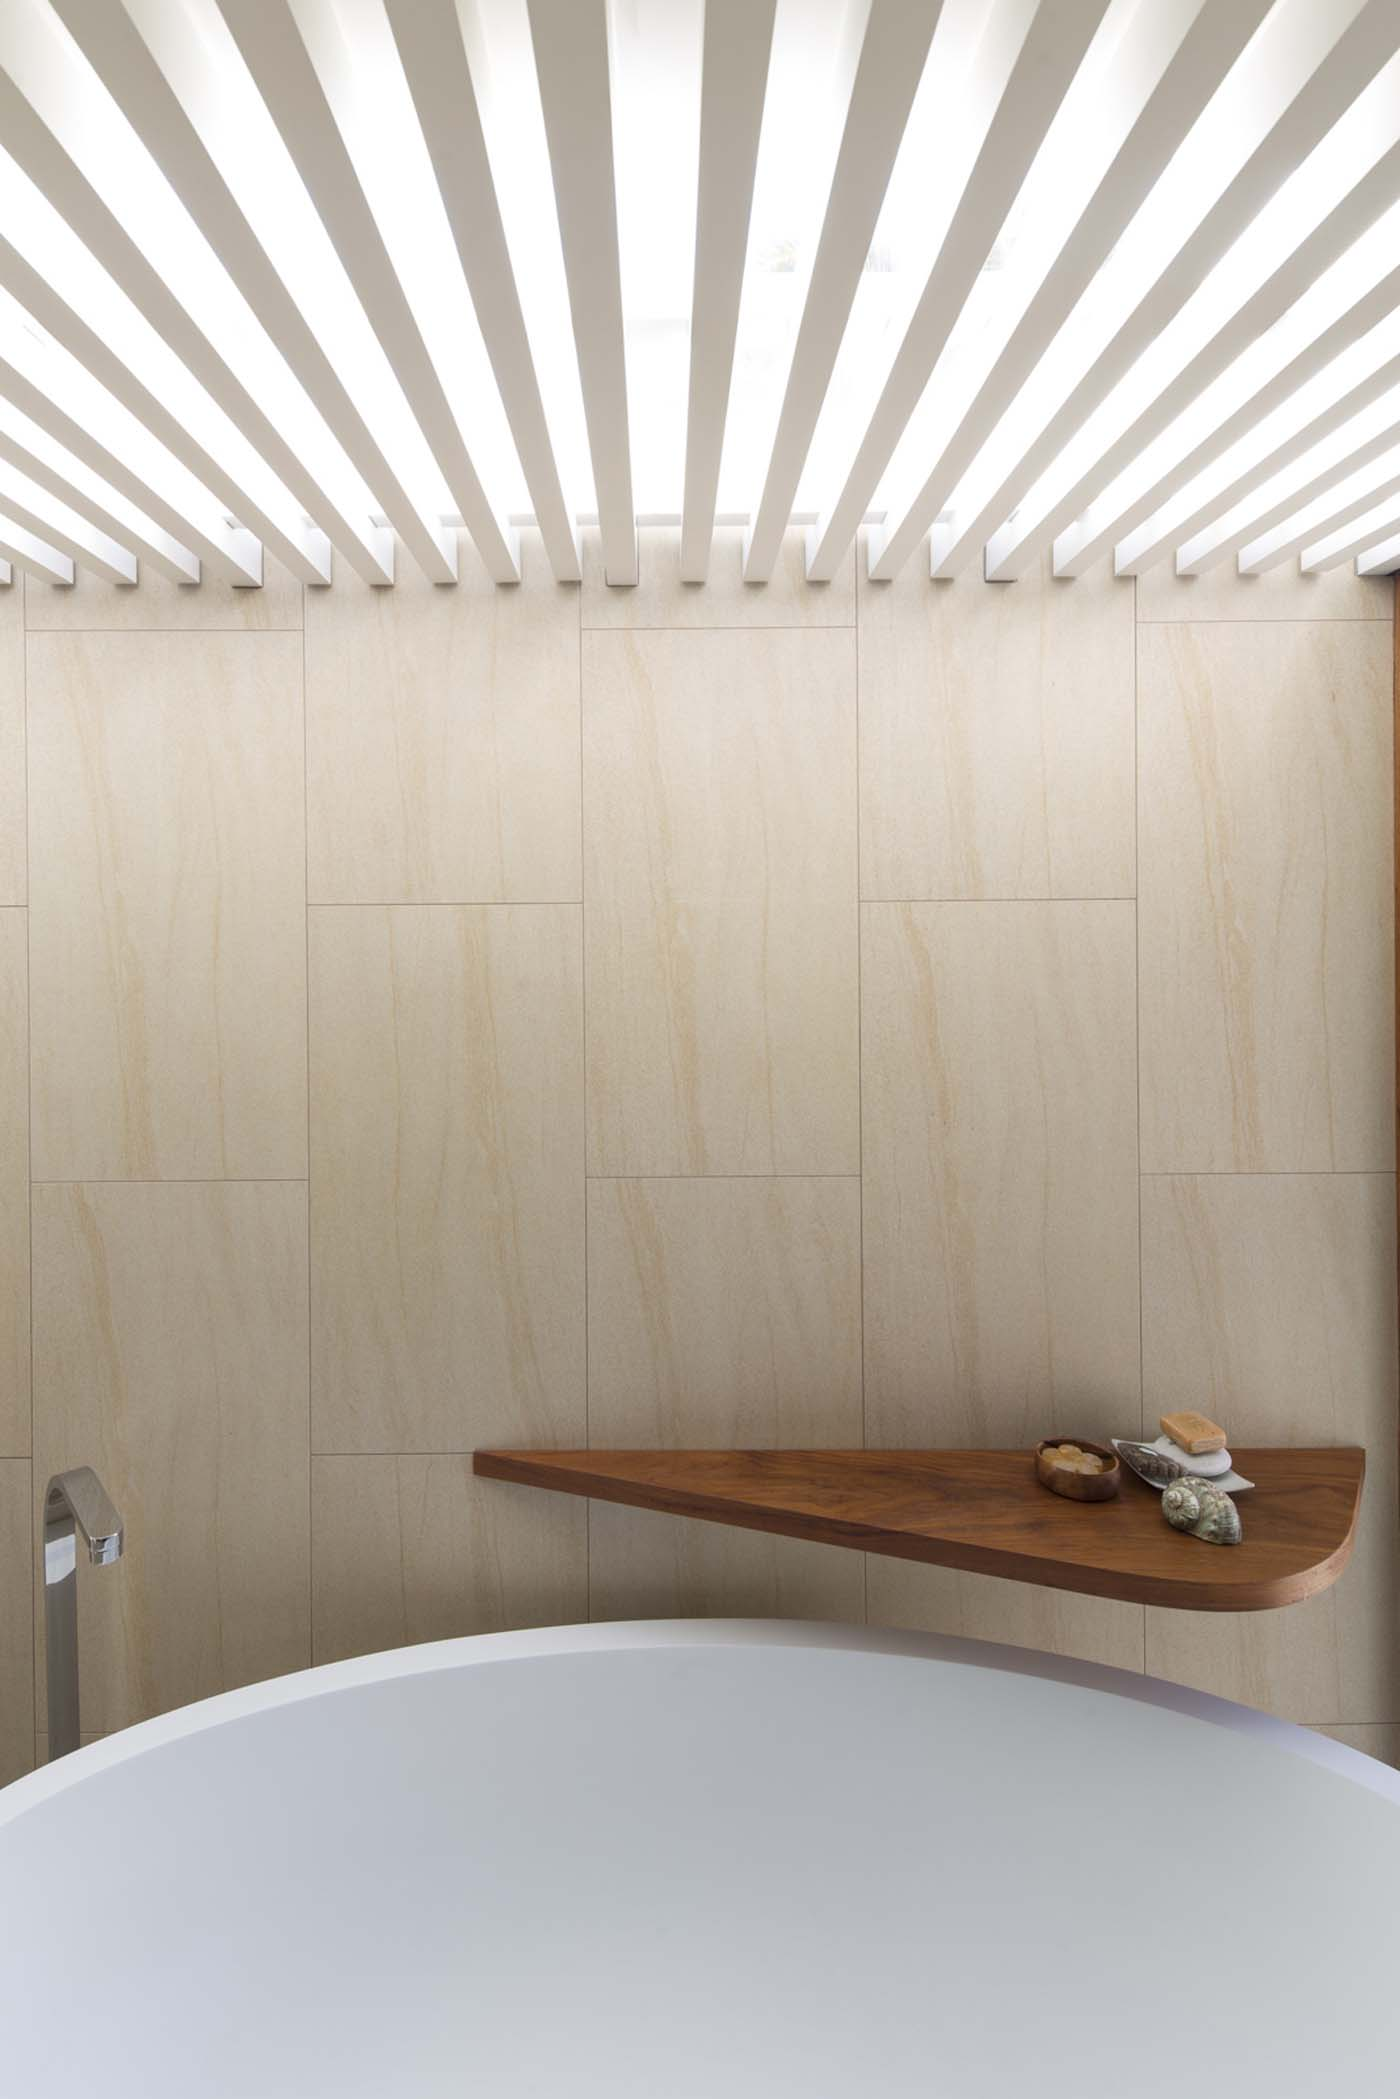 The Bower by Sam Crawford Architect, bathroom photo highlighting materiality, fixtures and lighting